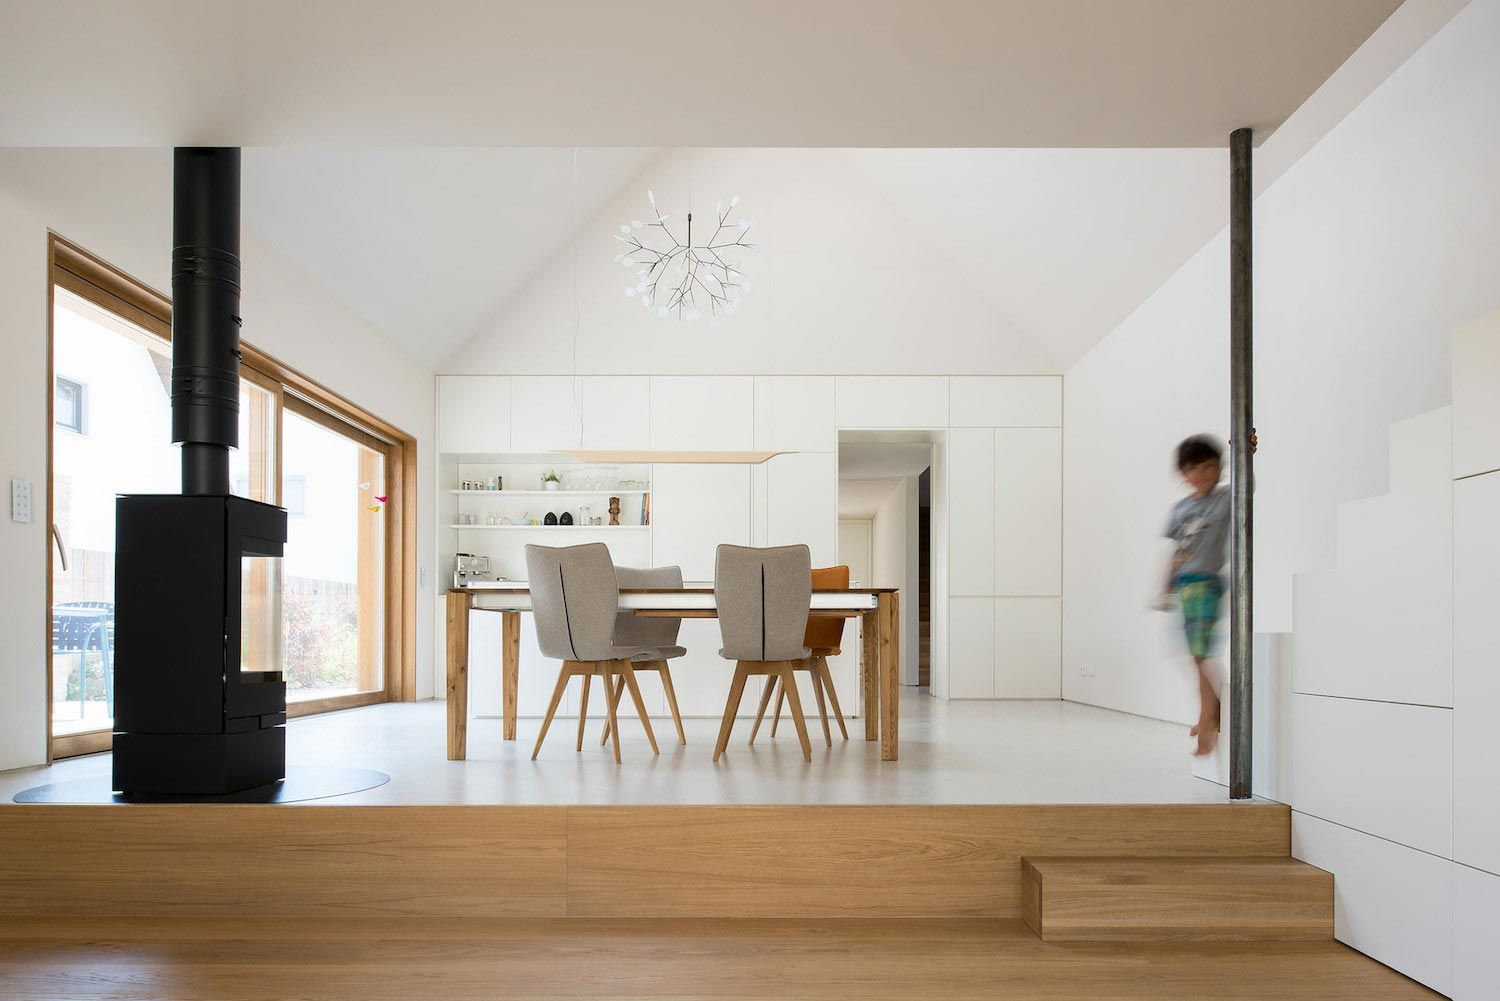 Clean and simple House SPK in Ingolstadt designed by nbundm ...